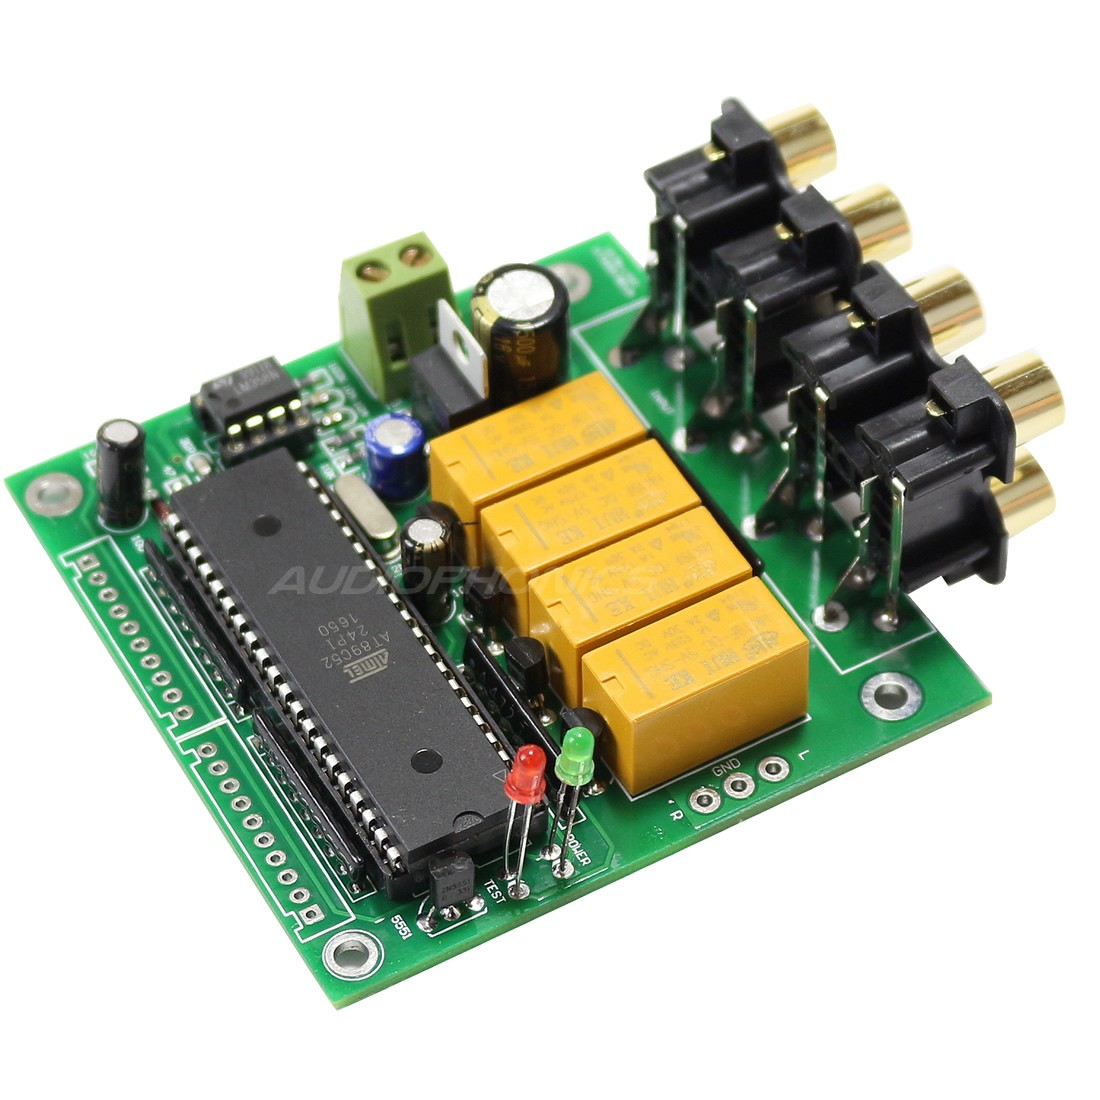 4-Channel Auto Source Selector